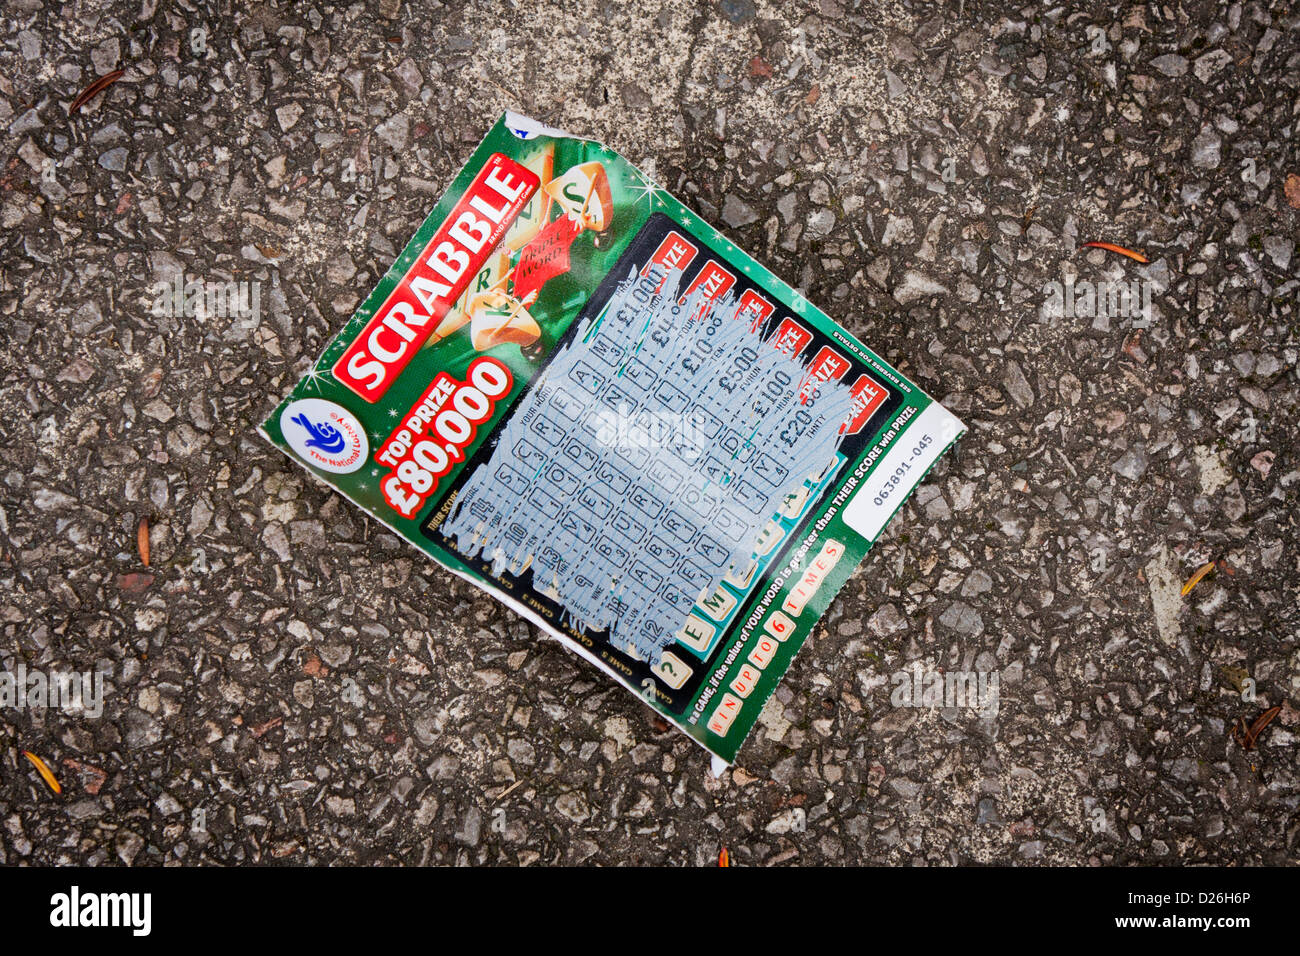 A losing scratchcard from the UK National Lottery has been thrown away on the road. - Stock Image